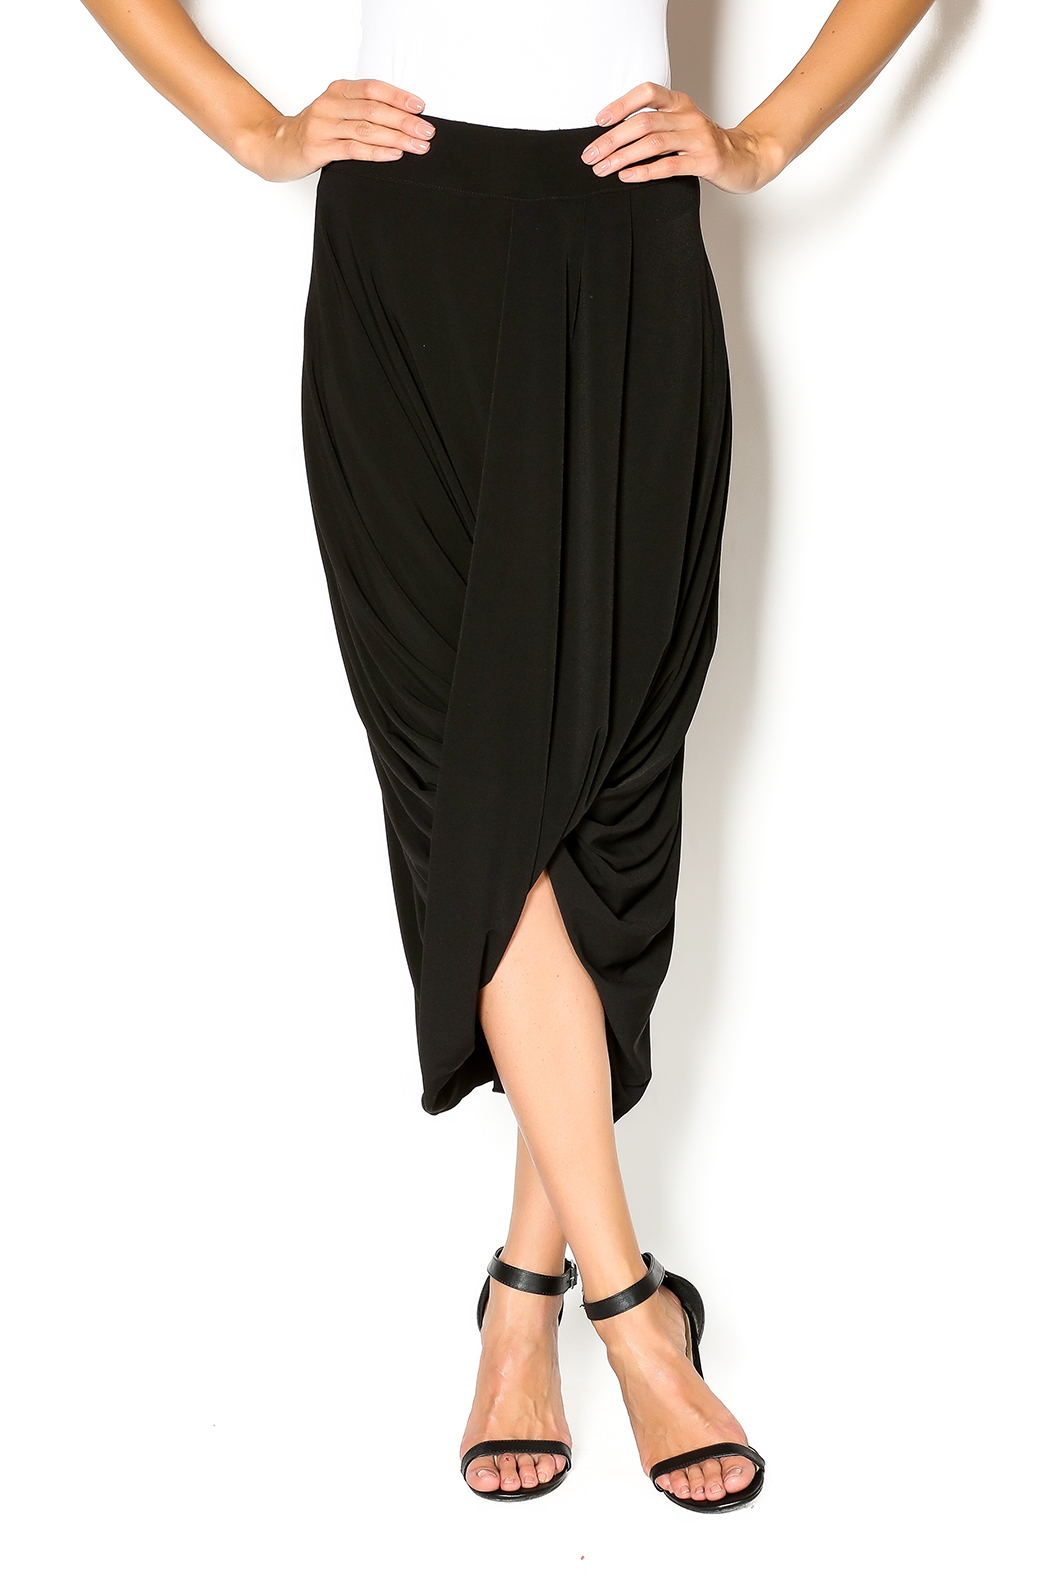 Joseph Ribkoff Tulip Skirt from Guilford by Tracy Brent ...